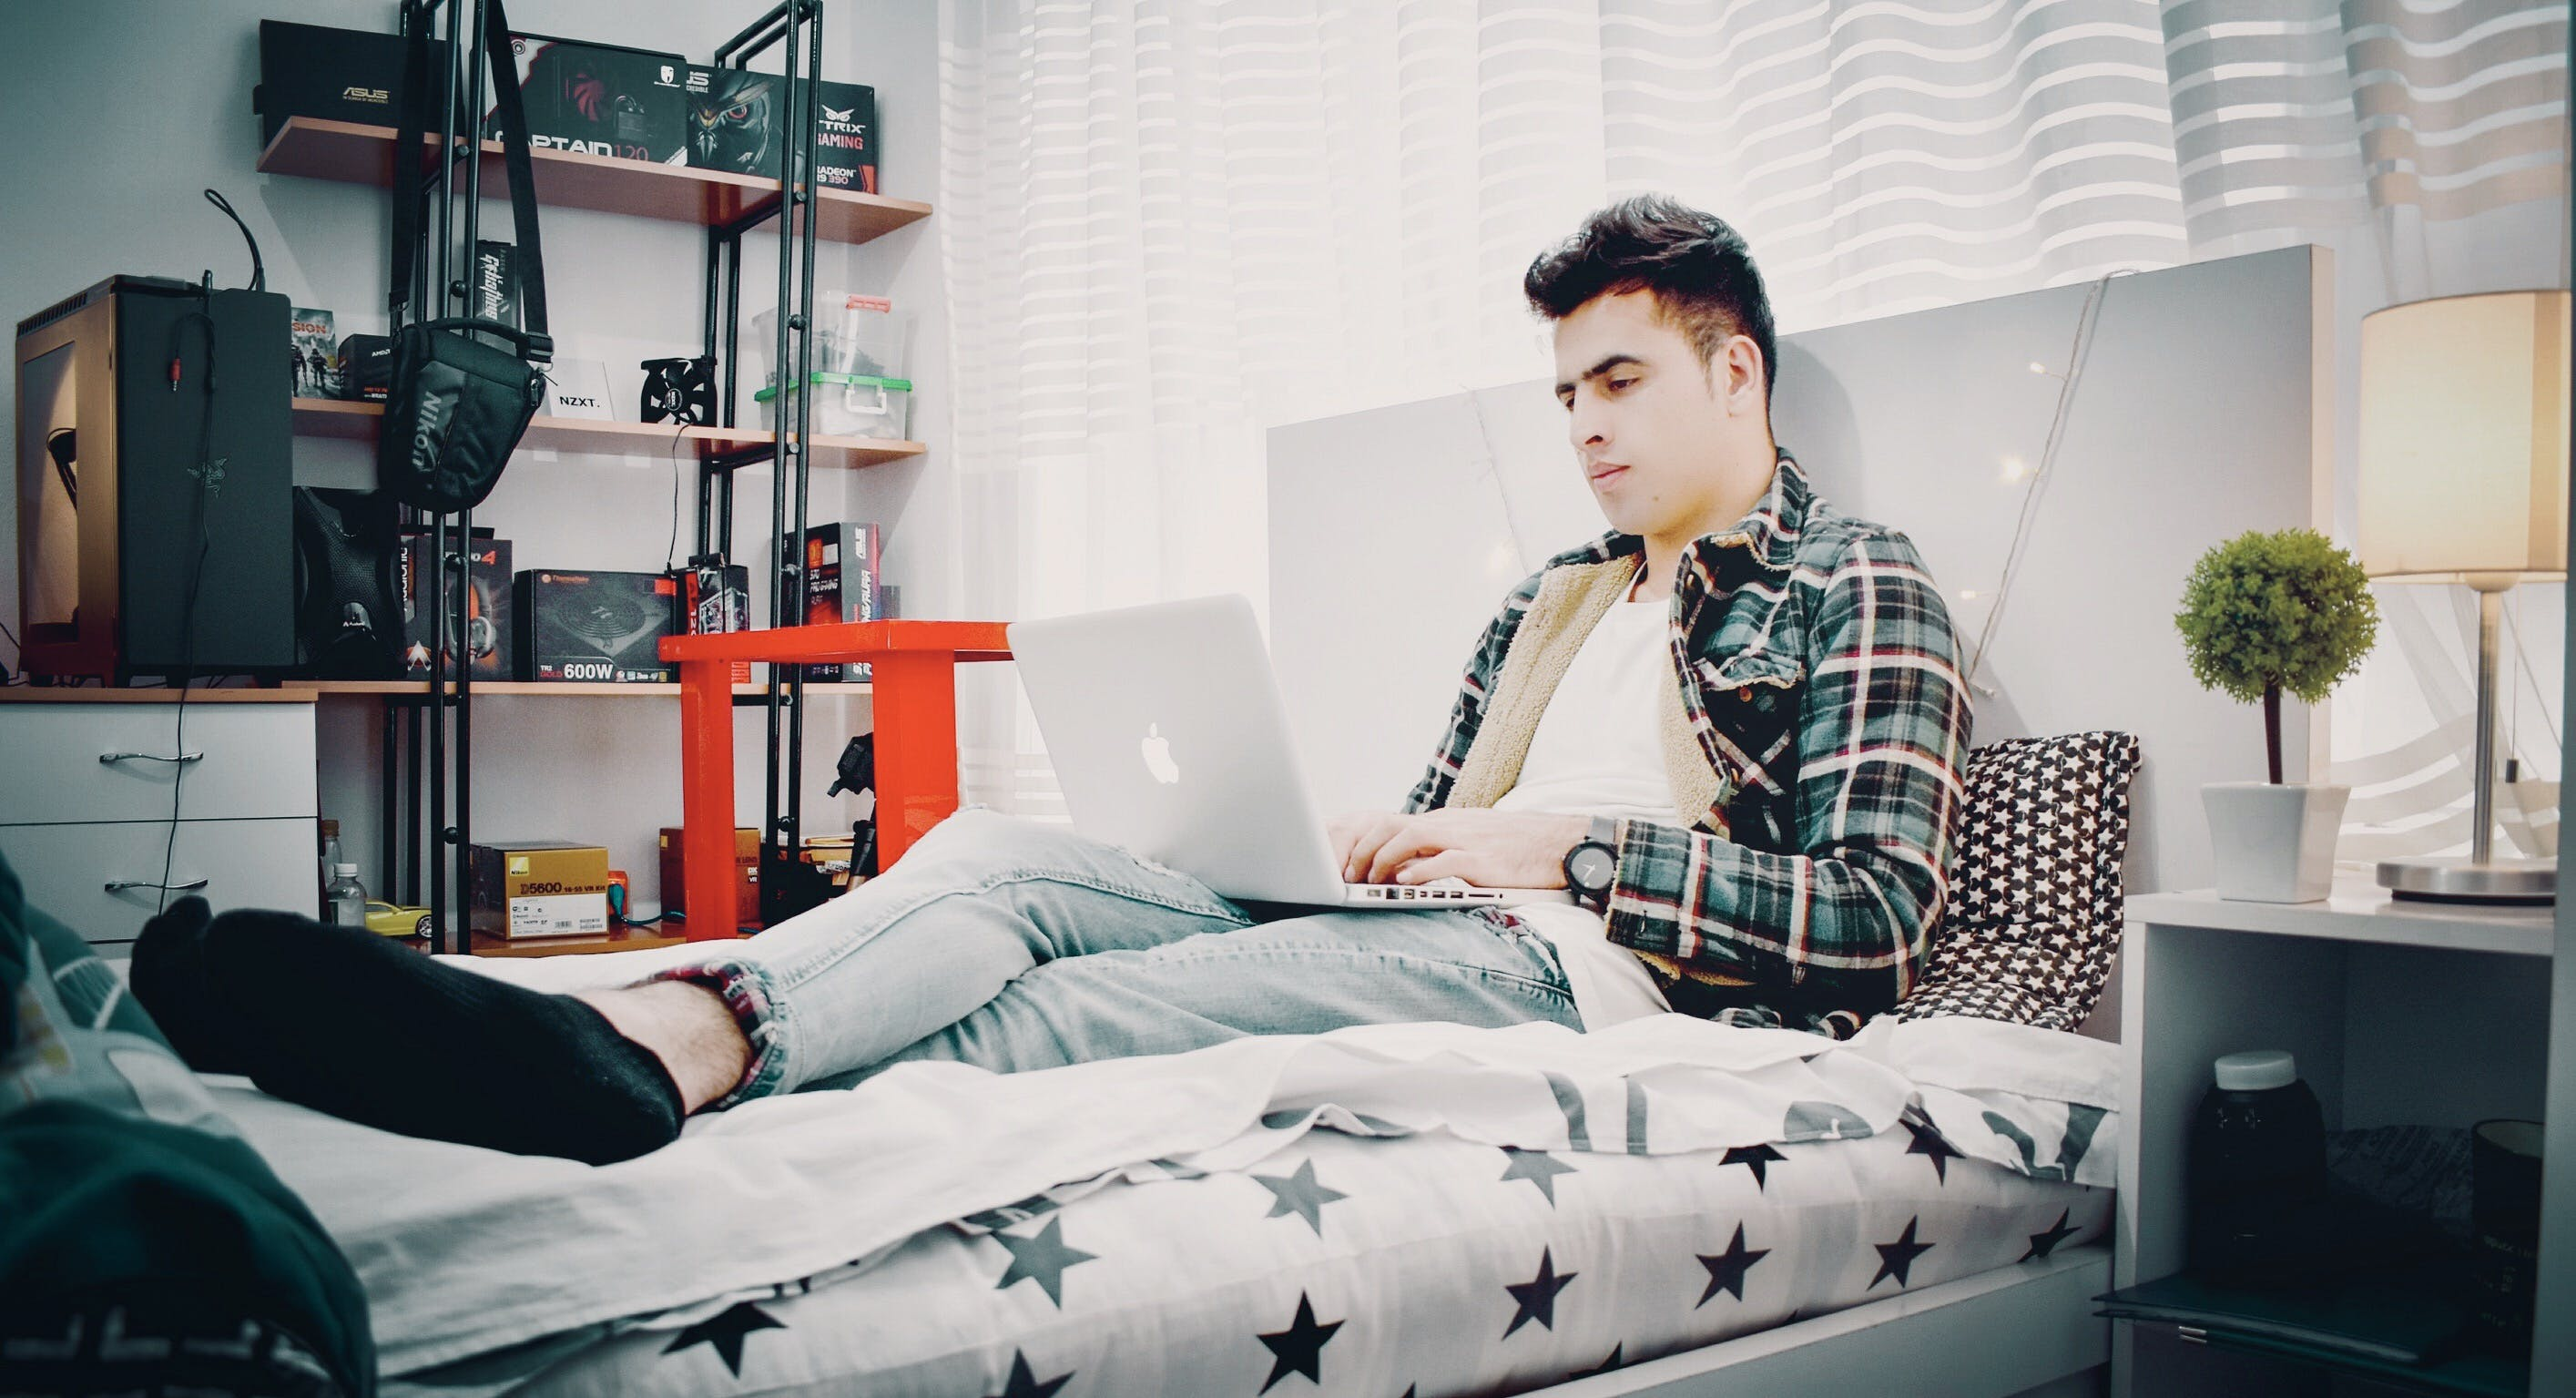 Man in Green, Blue, and Black Plaid Sports Shirt Sitting on Bed Using Silver Macbook